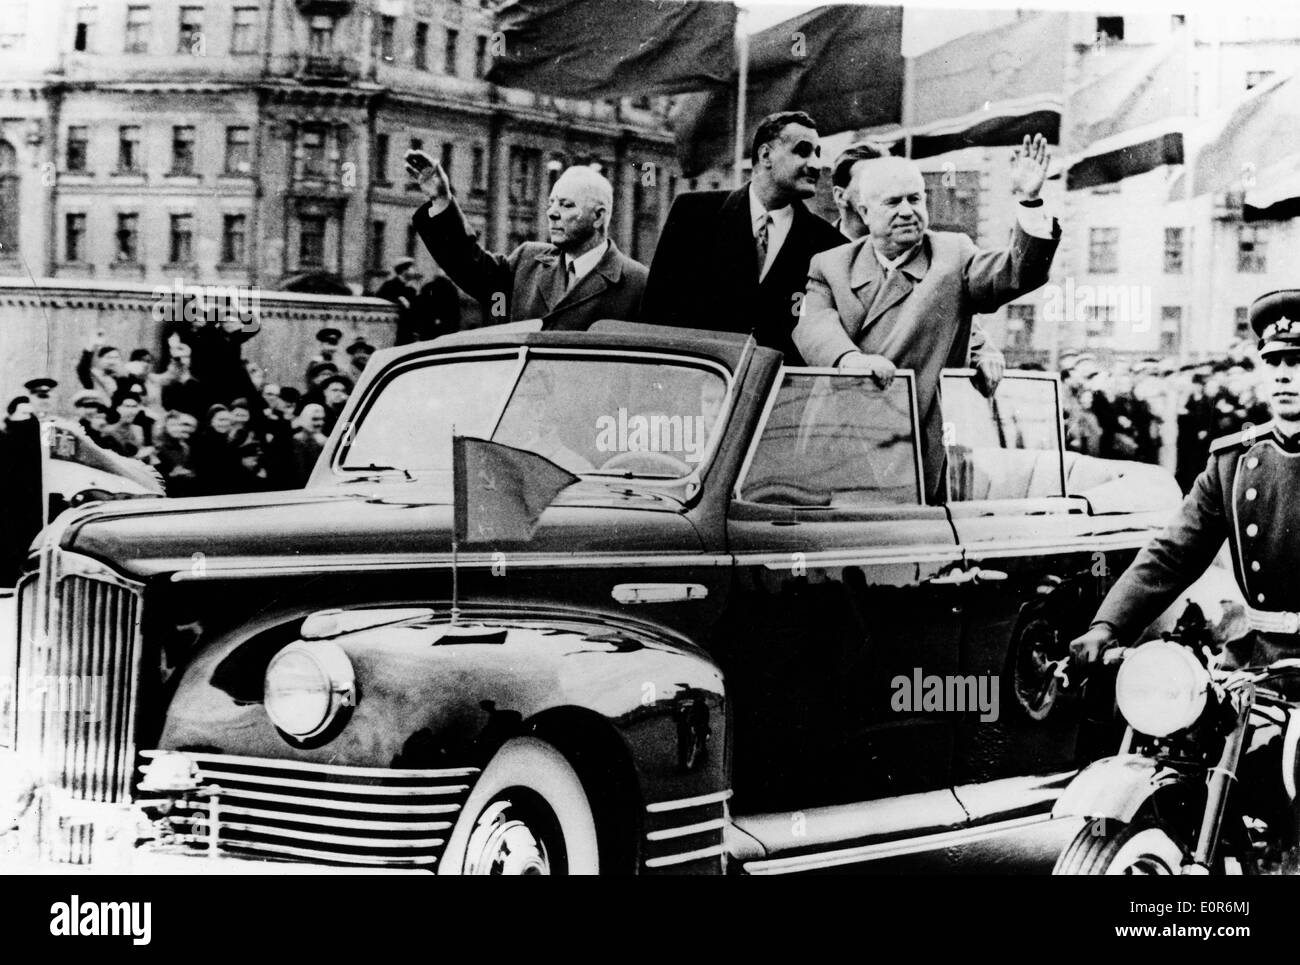 Prime Minister Nikita Khrushchev rides through streets - Stock Image